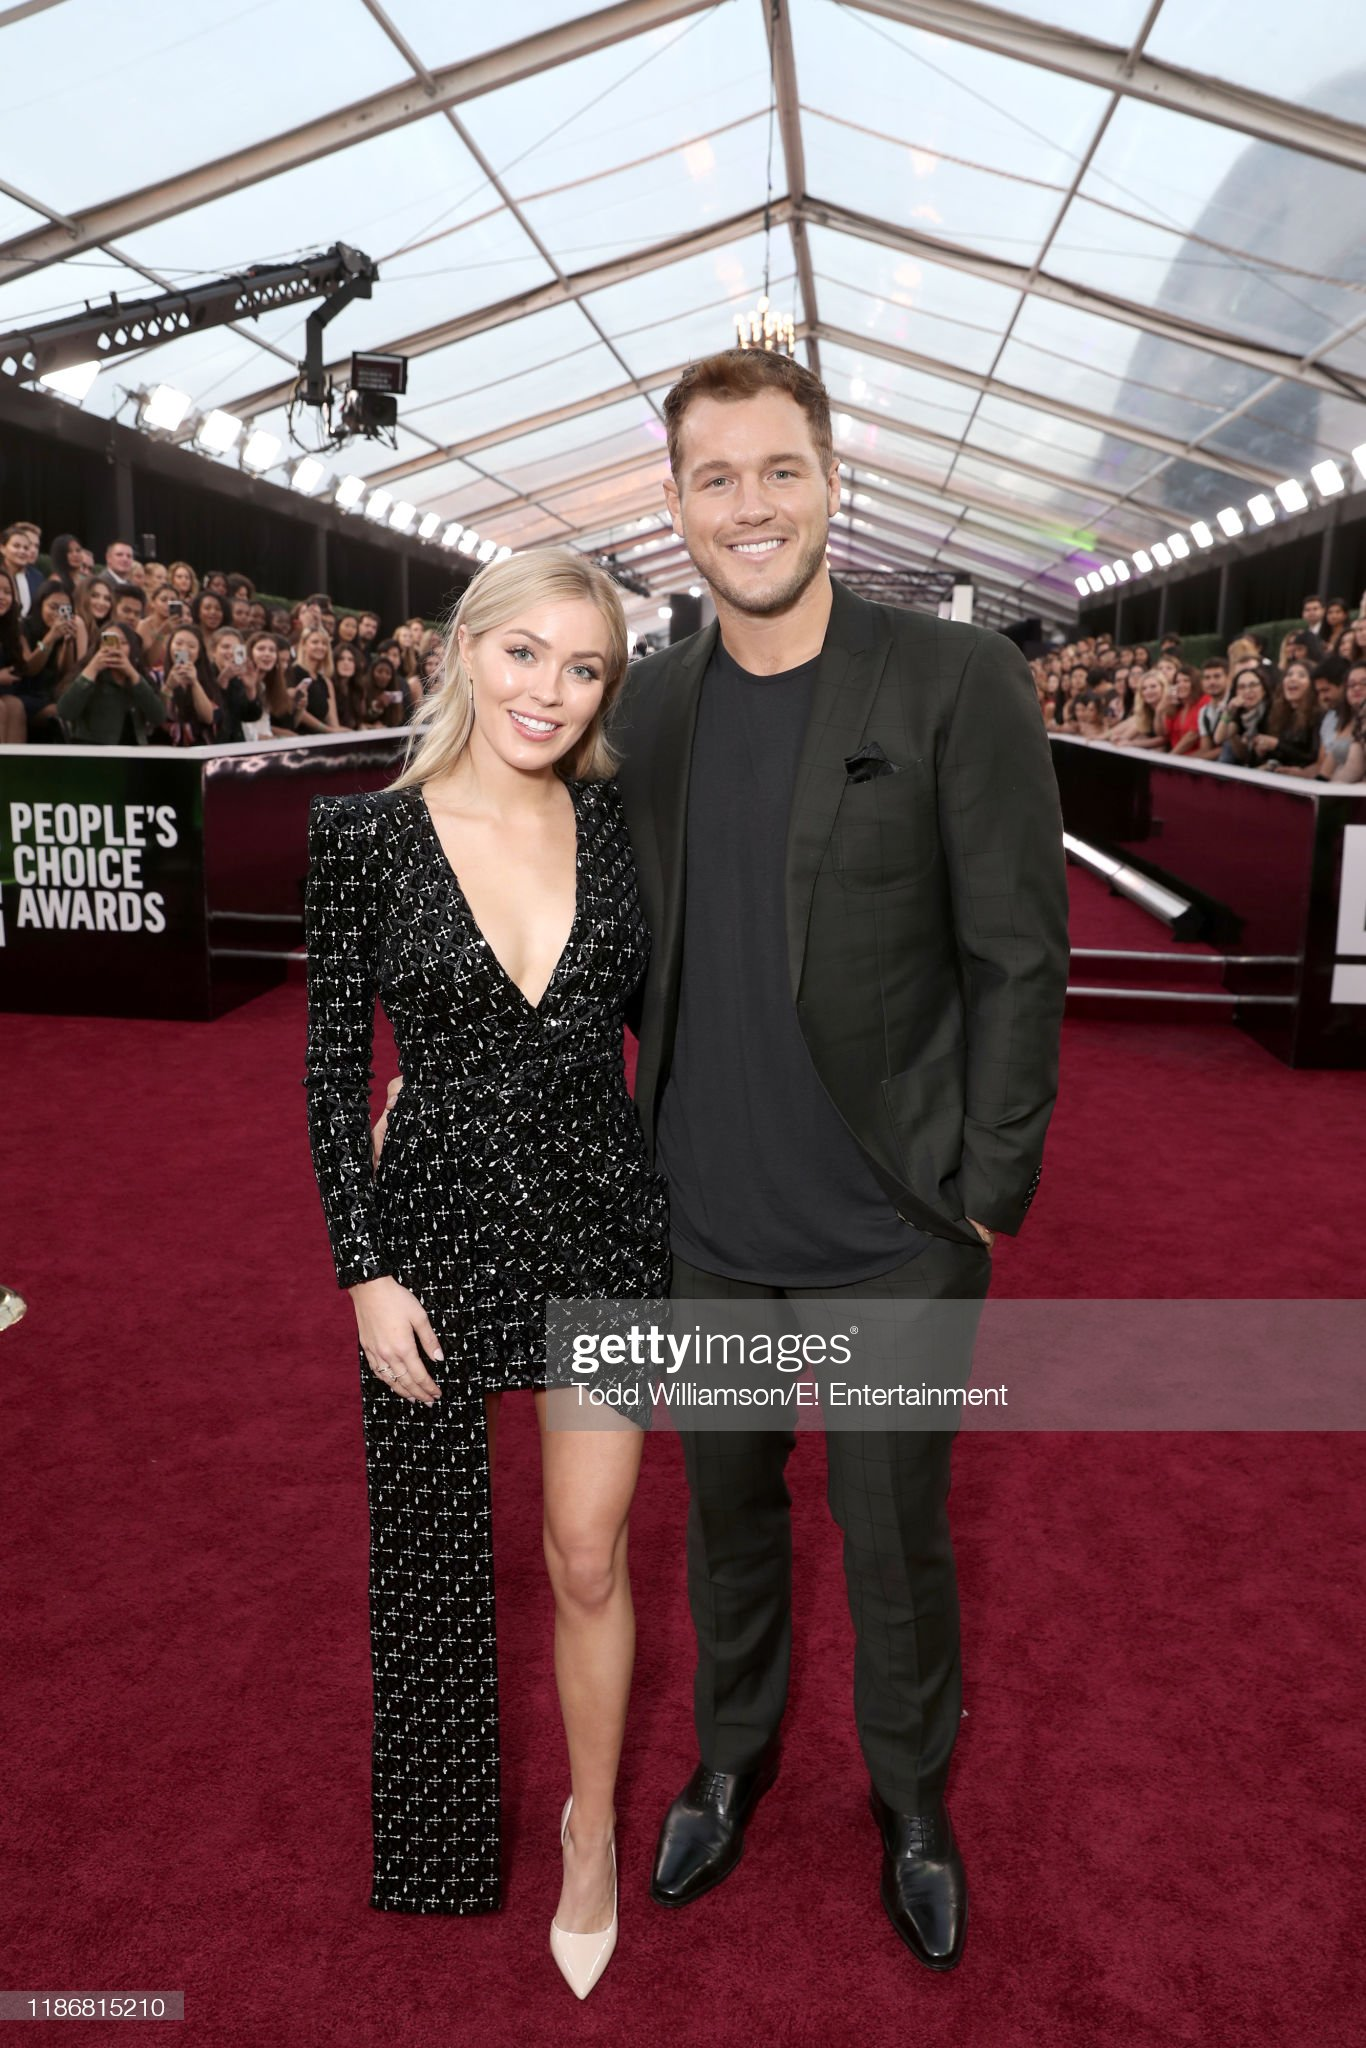 Colton Underwood & Cassie Randolph - Bachelor 23 - Discussion - Page 14 Pictured-cassie-randolph-and-colton-underwood-arrive-to-the-2019-e-picture-id1186815210?s=2048x2048